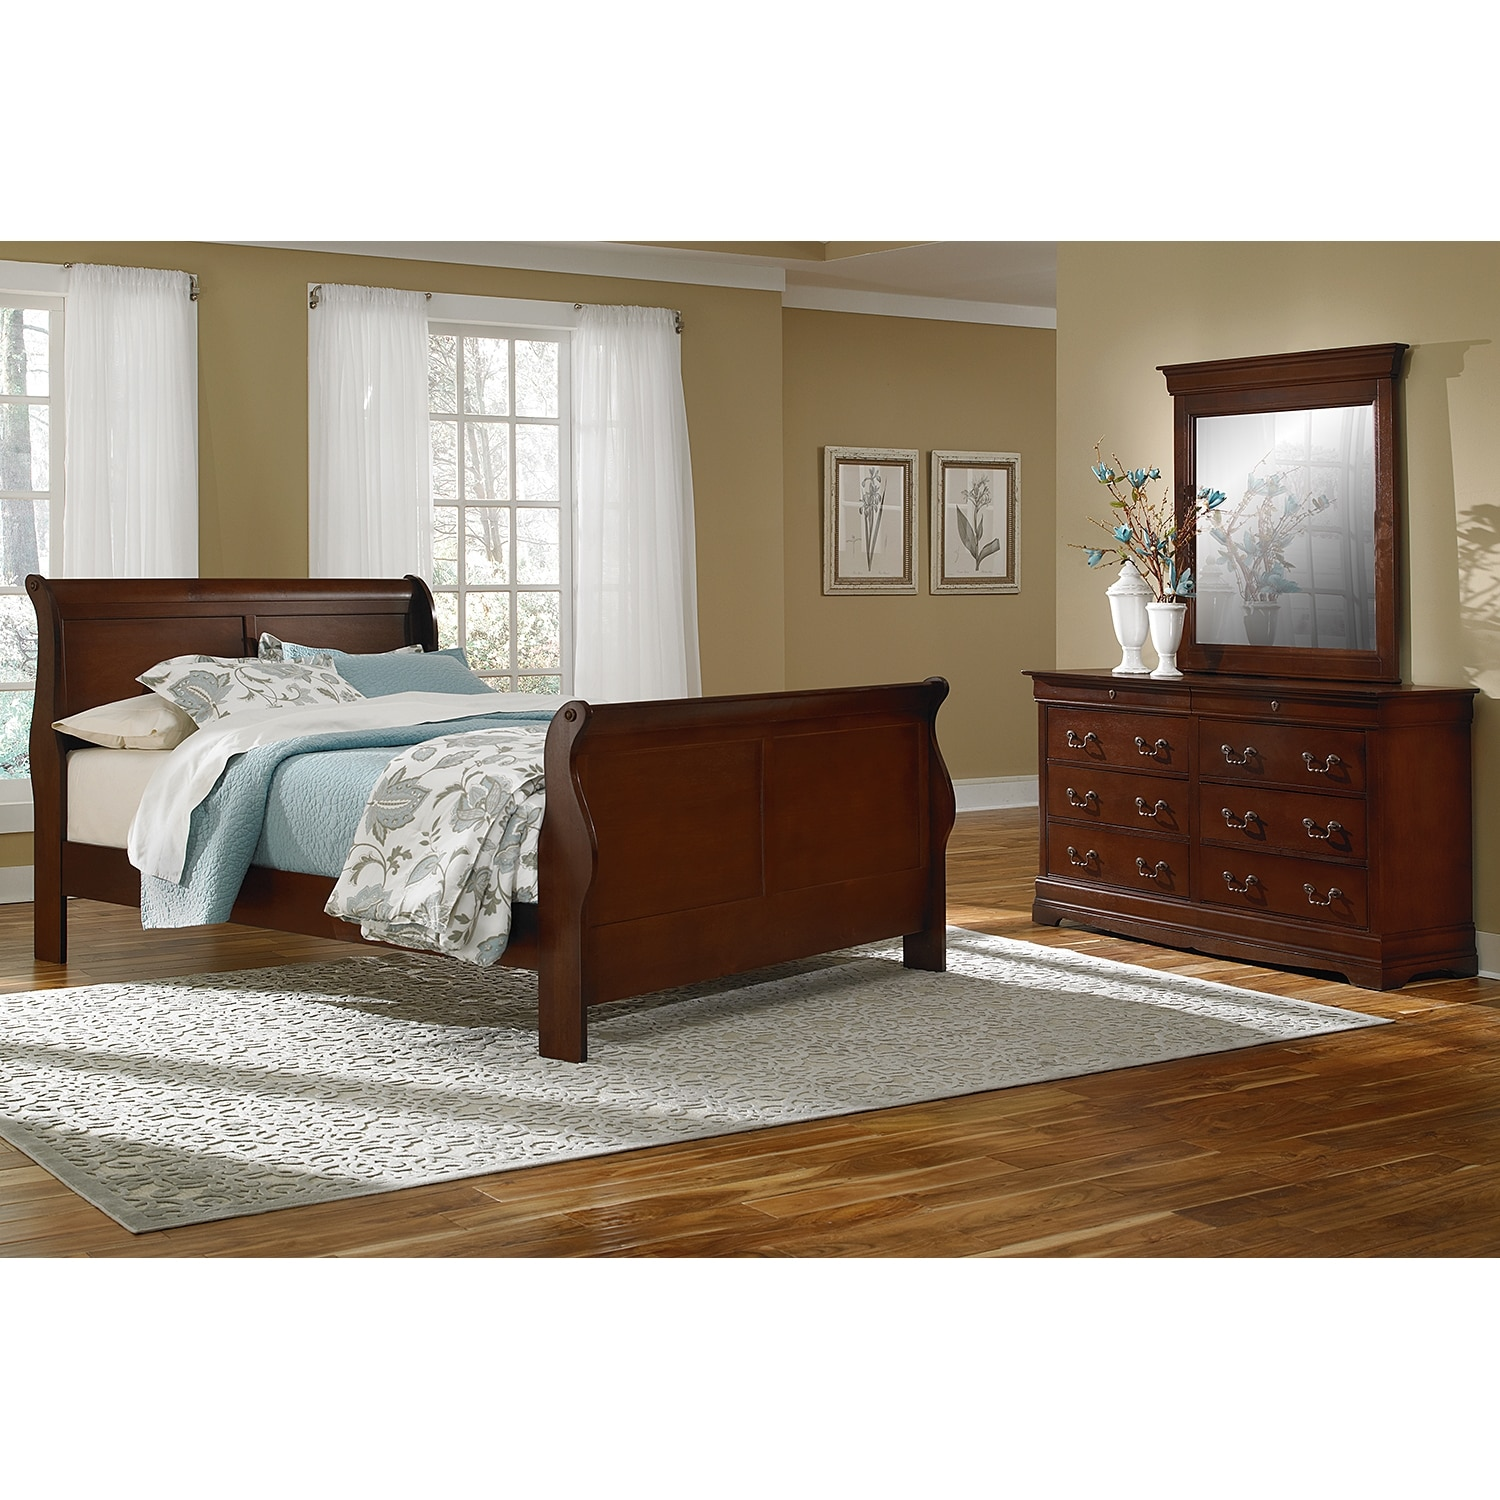 Neo Classic 5-Piece King Bedroom Set - Cherry